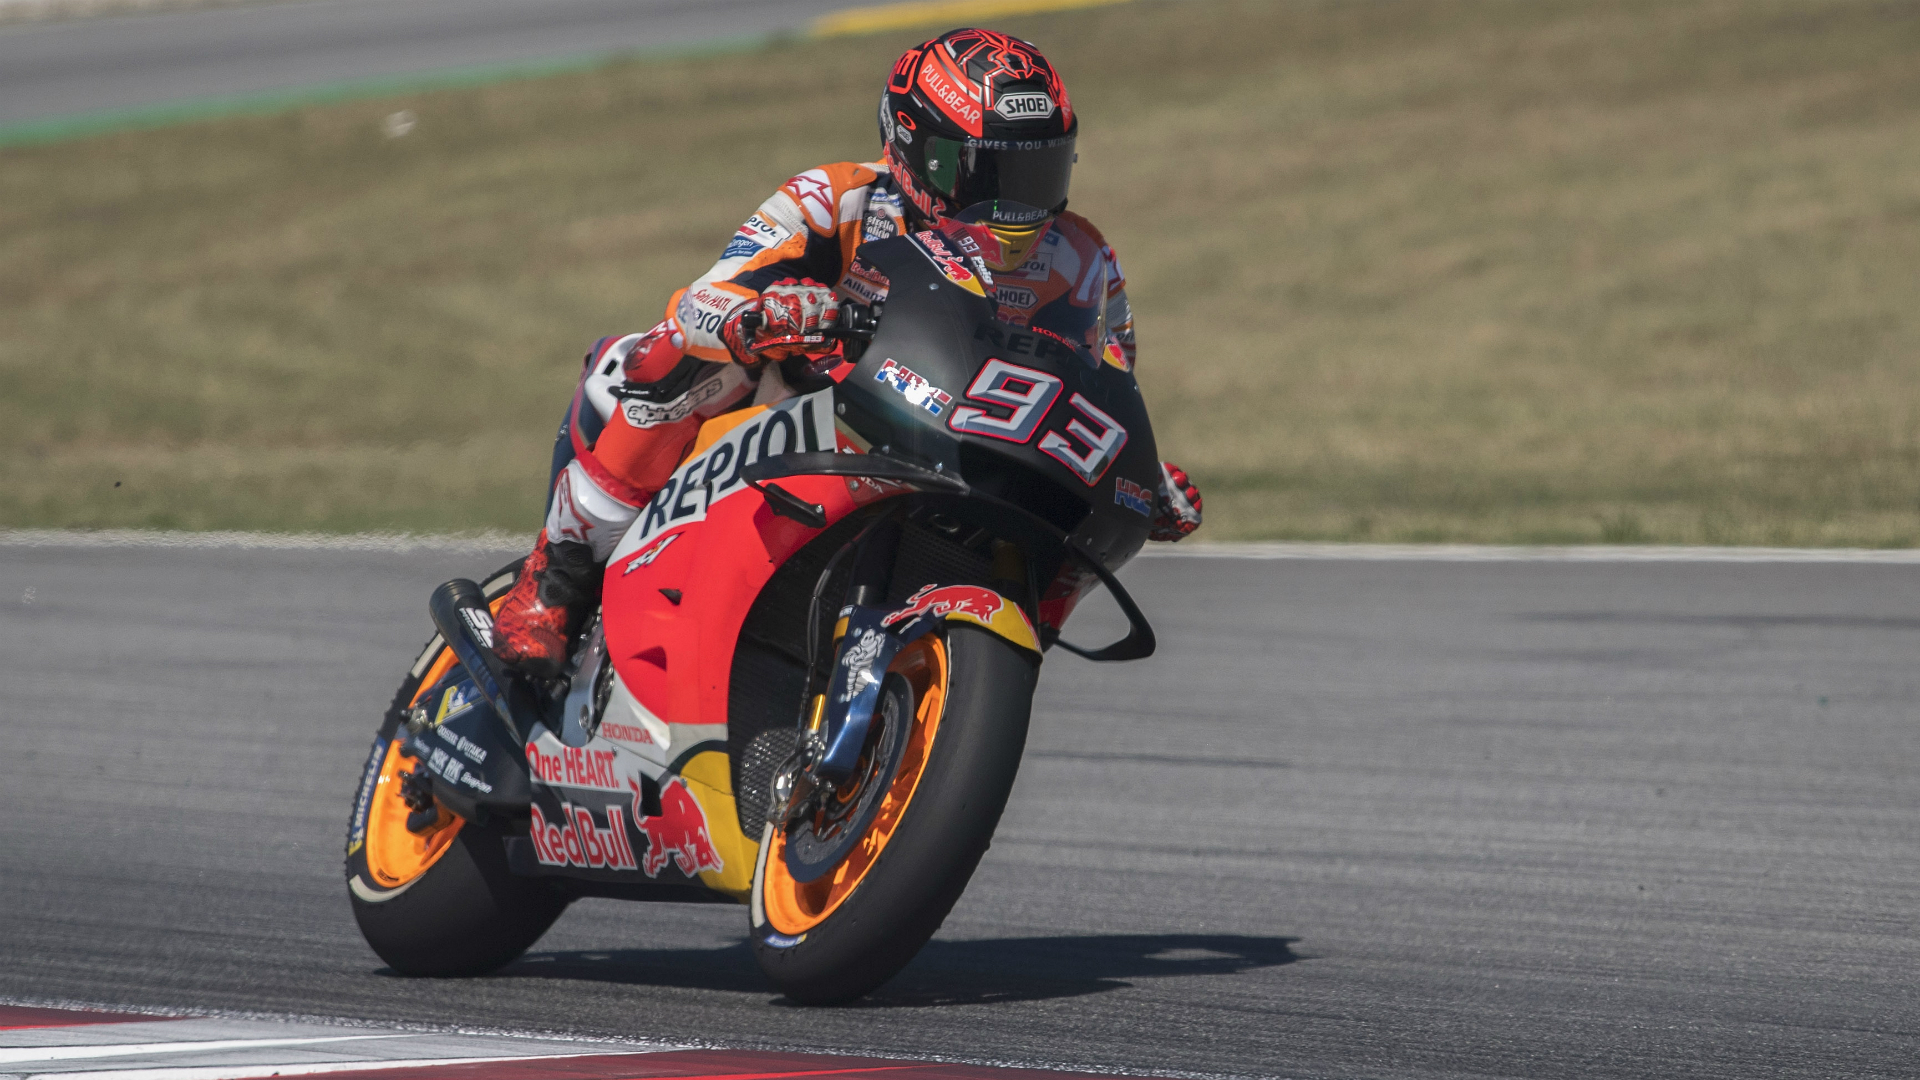 He may have a dominant lead in the MotoGP standings but Marc Marquez will not let up when the racing resumes in August.